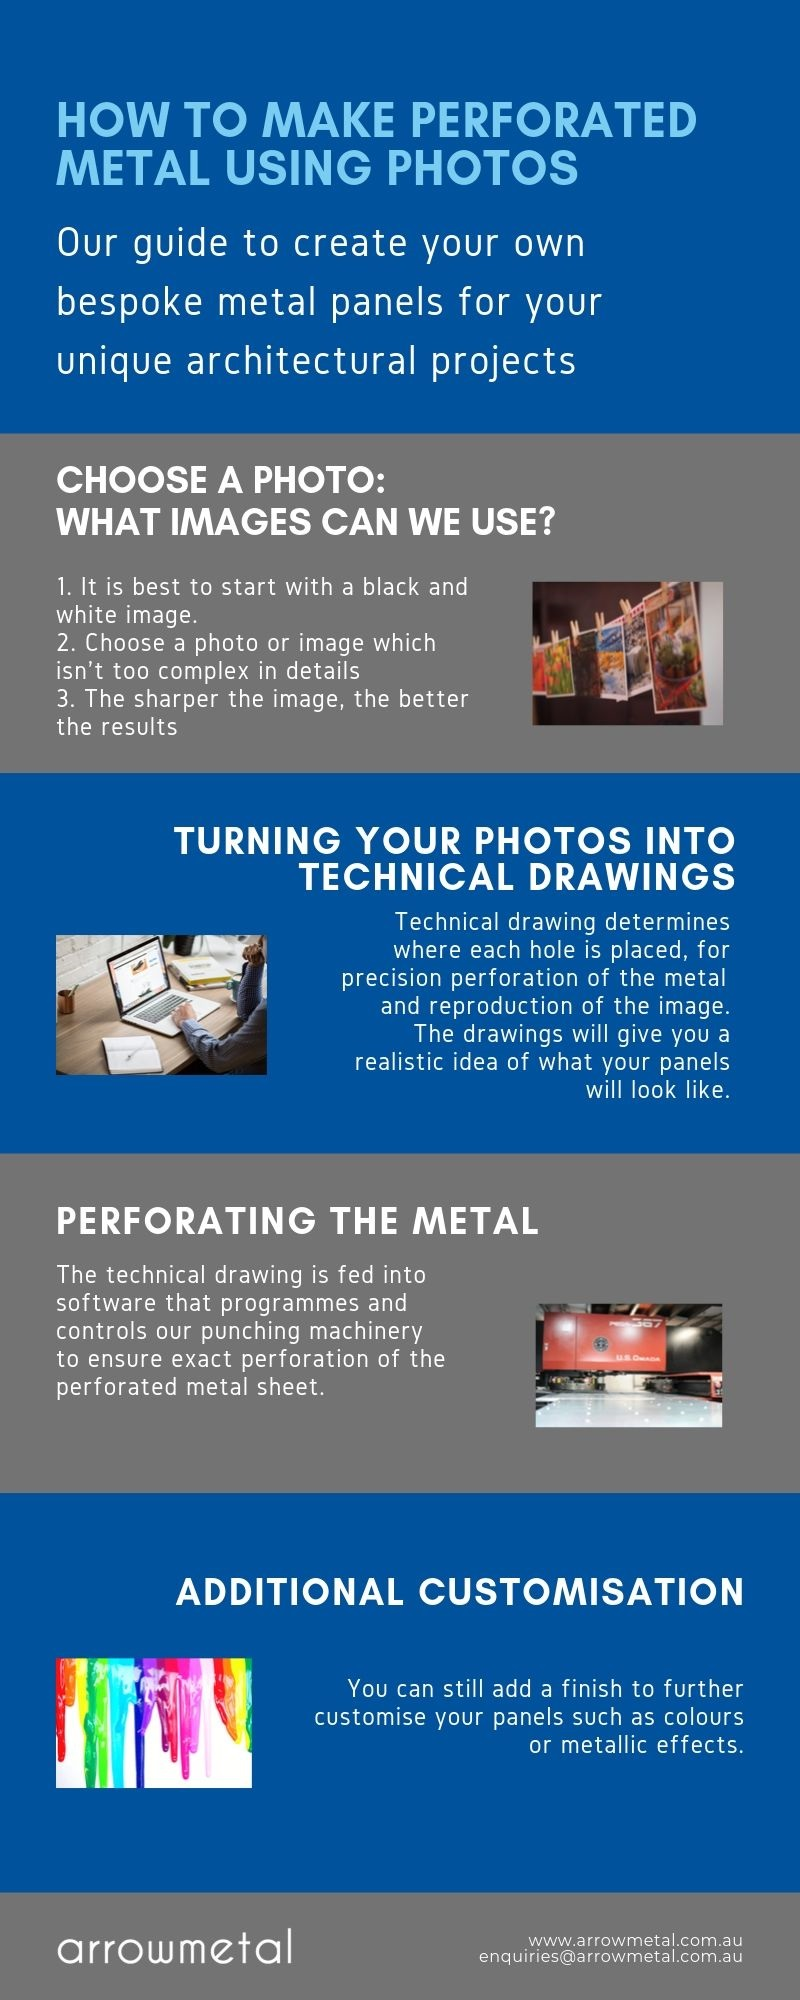 Perforated metal using photos - check out our step by step guide